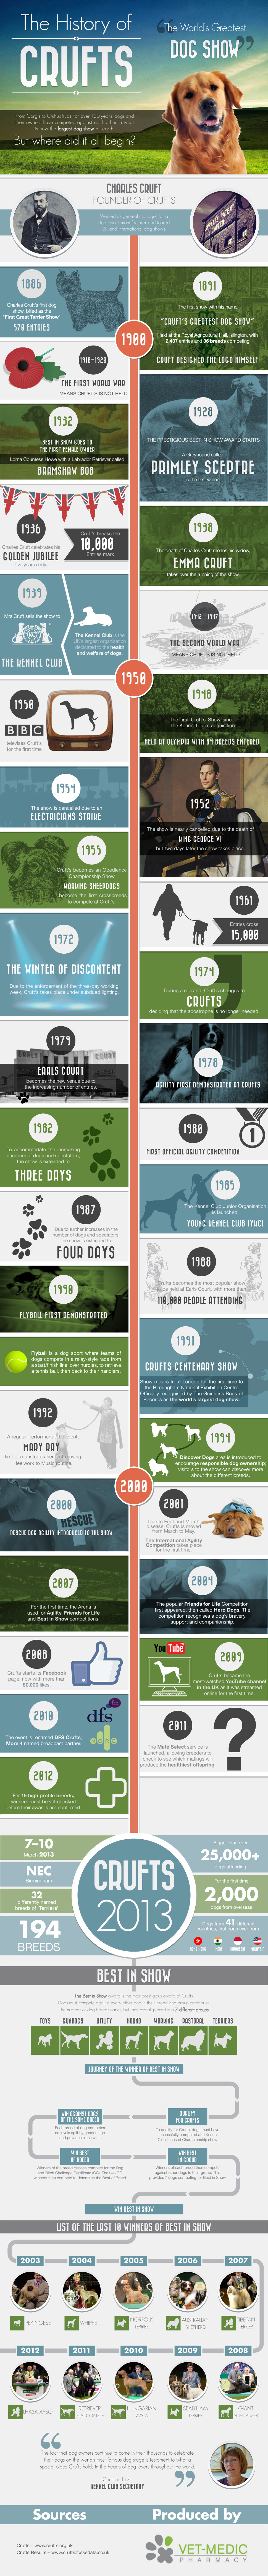 A History of Crufts [Infographic] image History of Crufts2